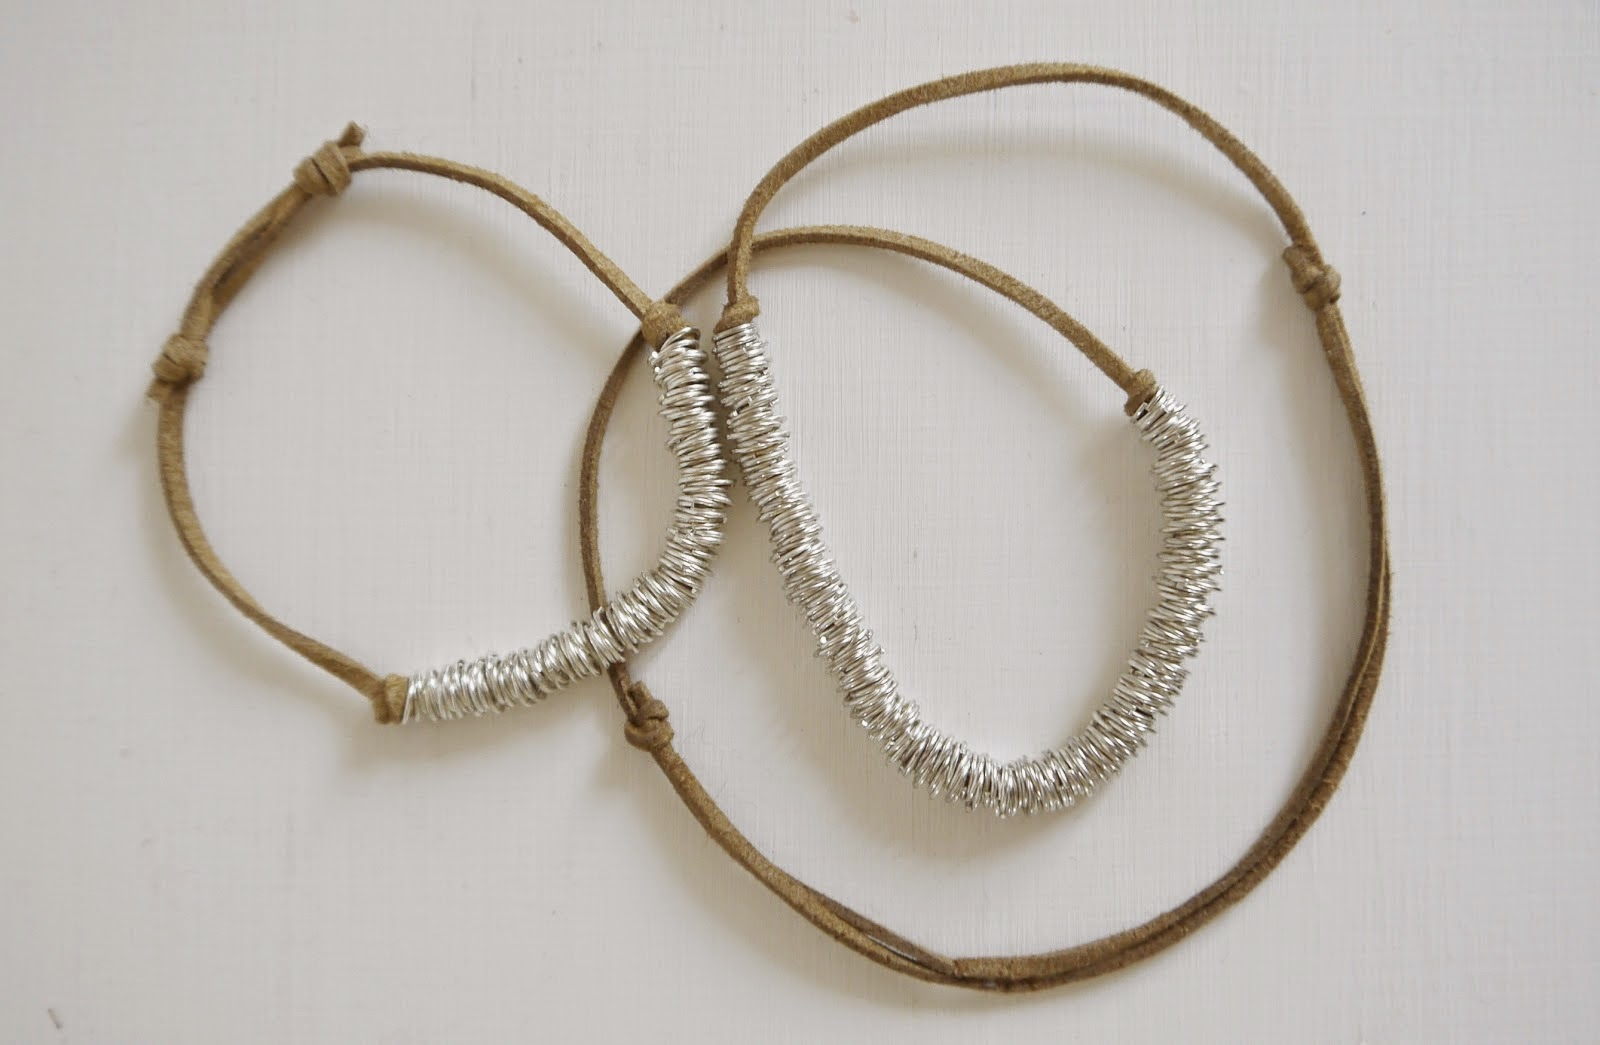 http://portialawrie.blogspot.co.uk/2014/08/diy-jump-ring-necklace-bracelet.html